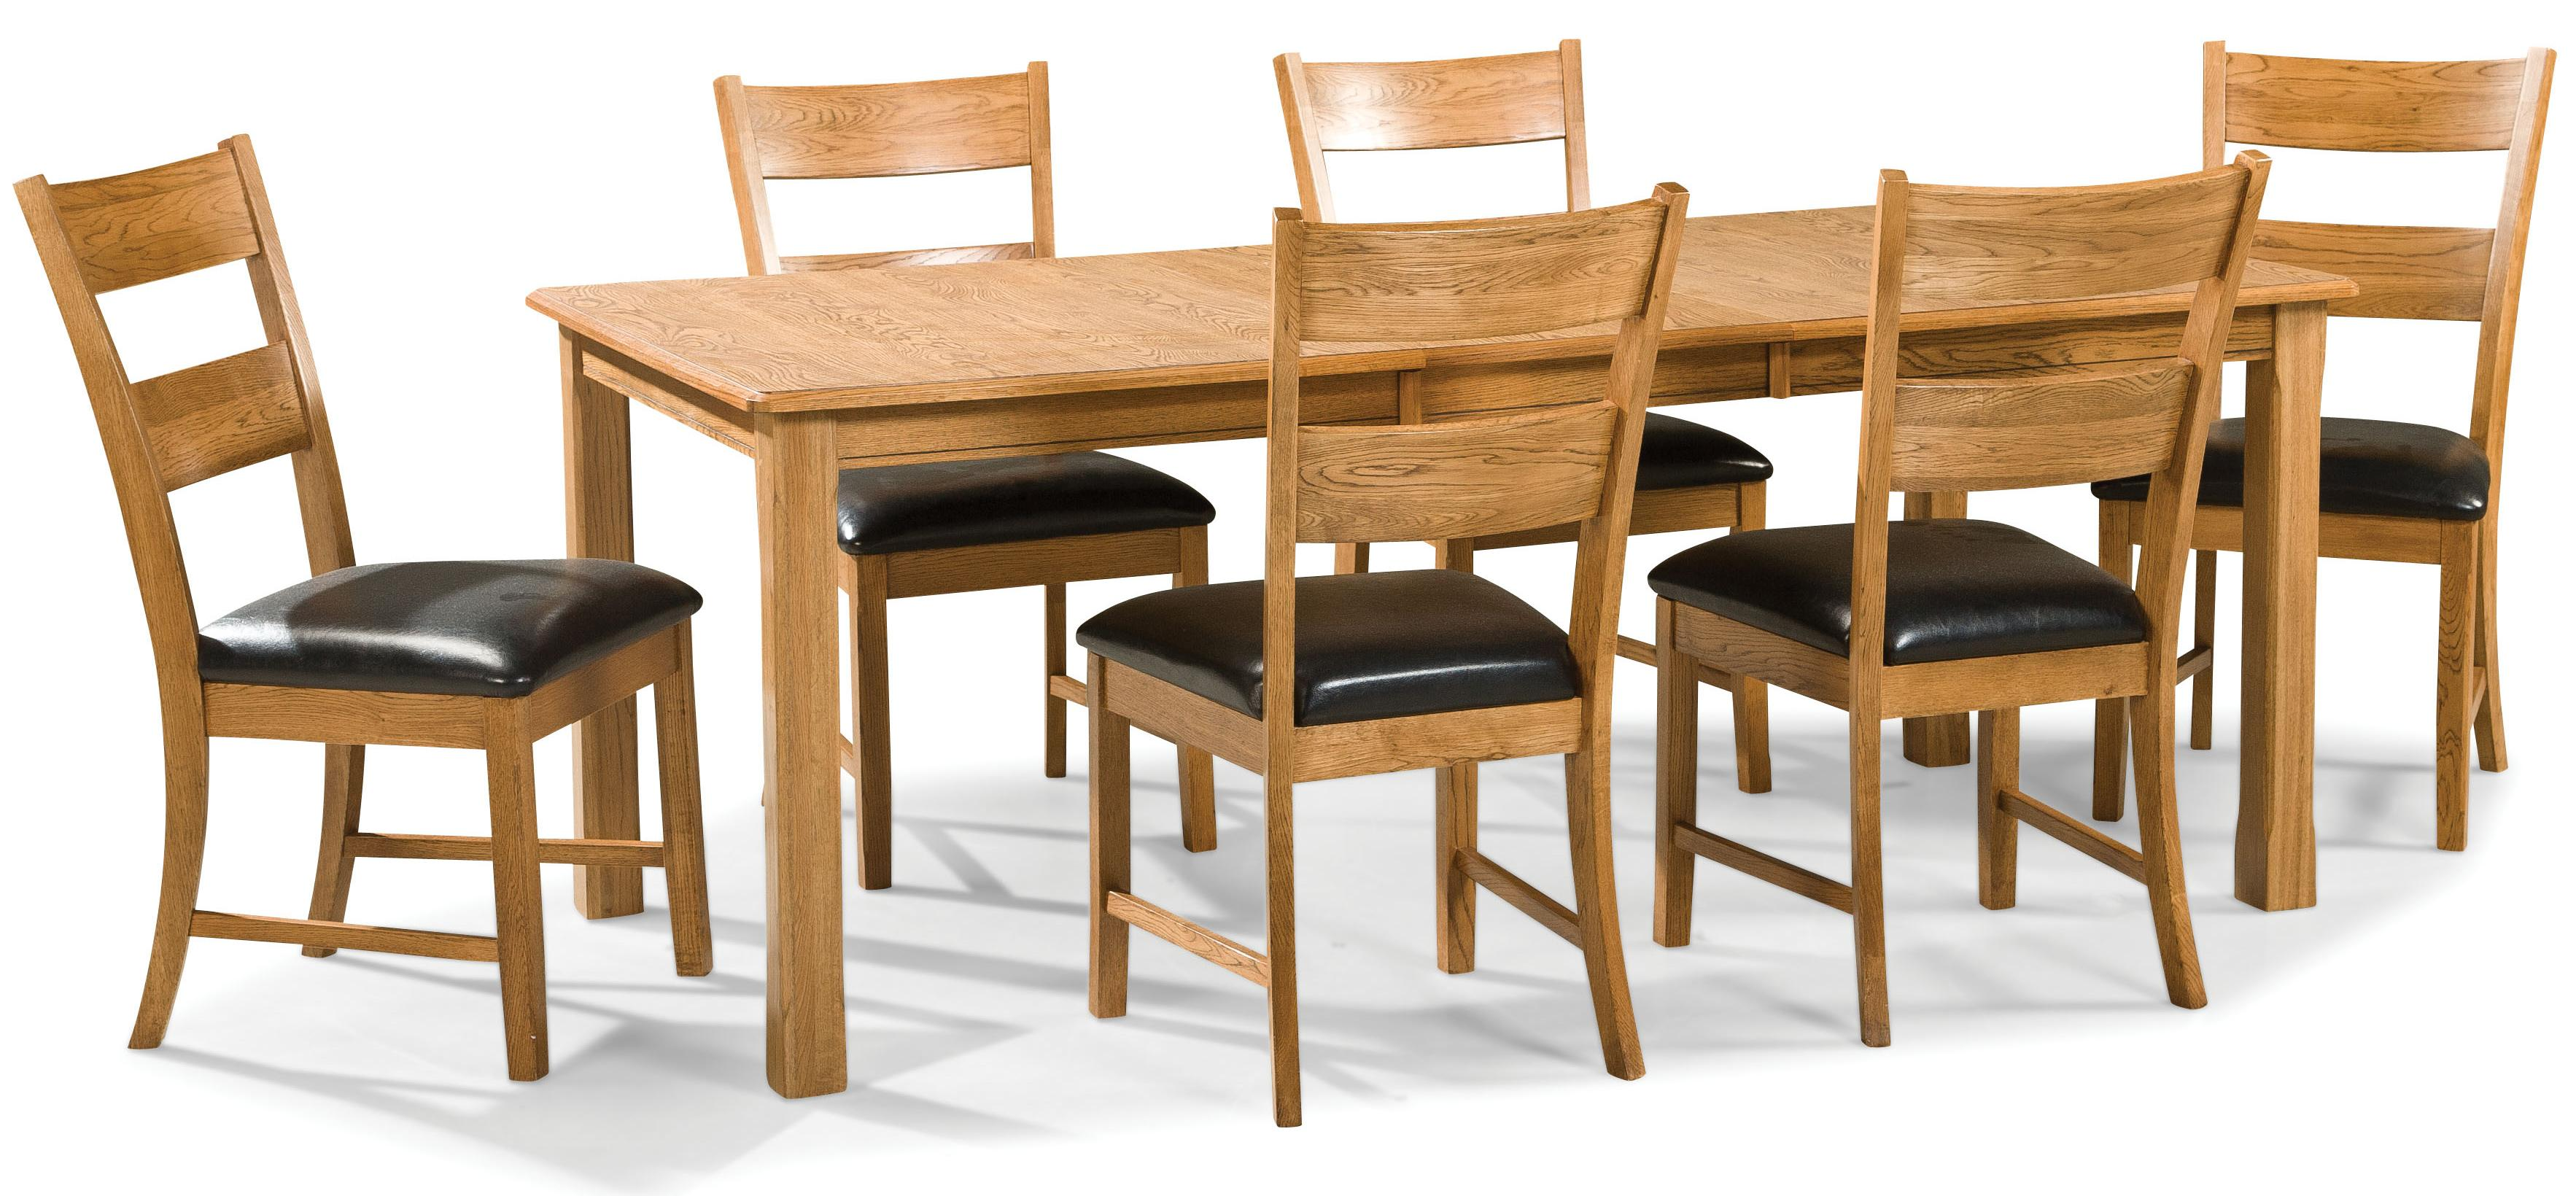 Family Dining 7 Piece Dining Set by Intercon at Dinette Depot